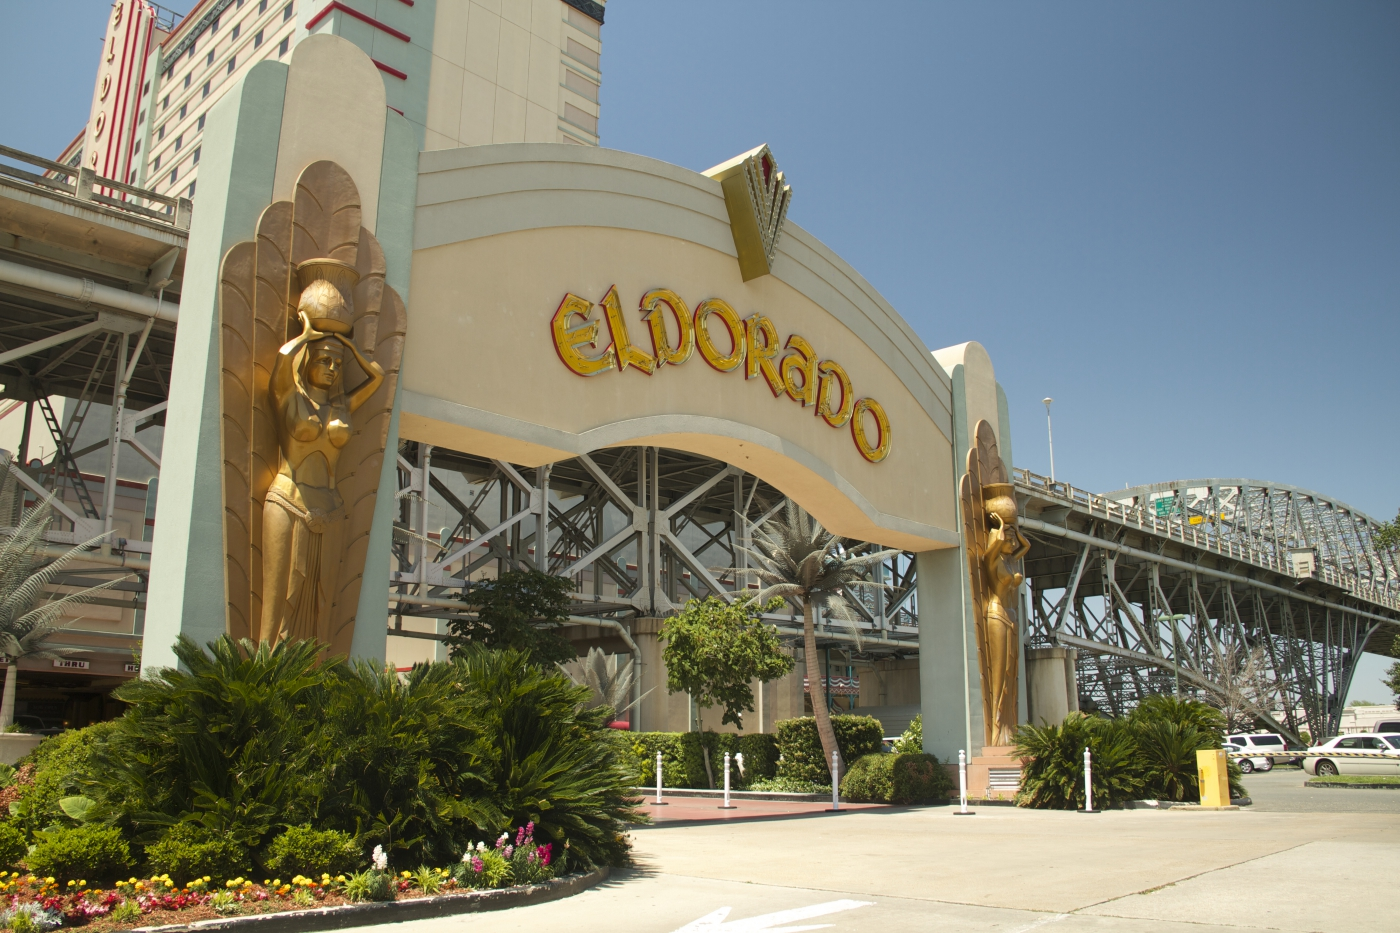 There are plenty of casinos to choose from in Shreveport - Bossier!